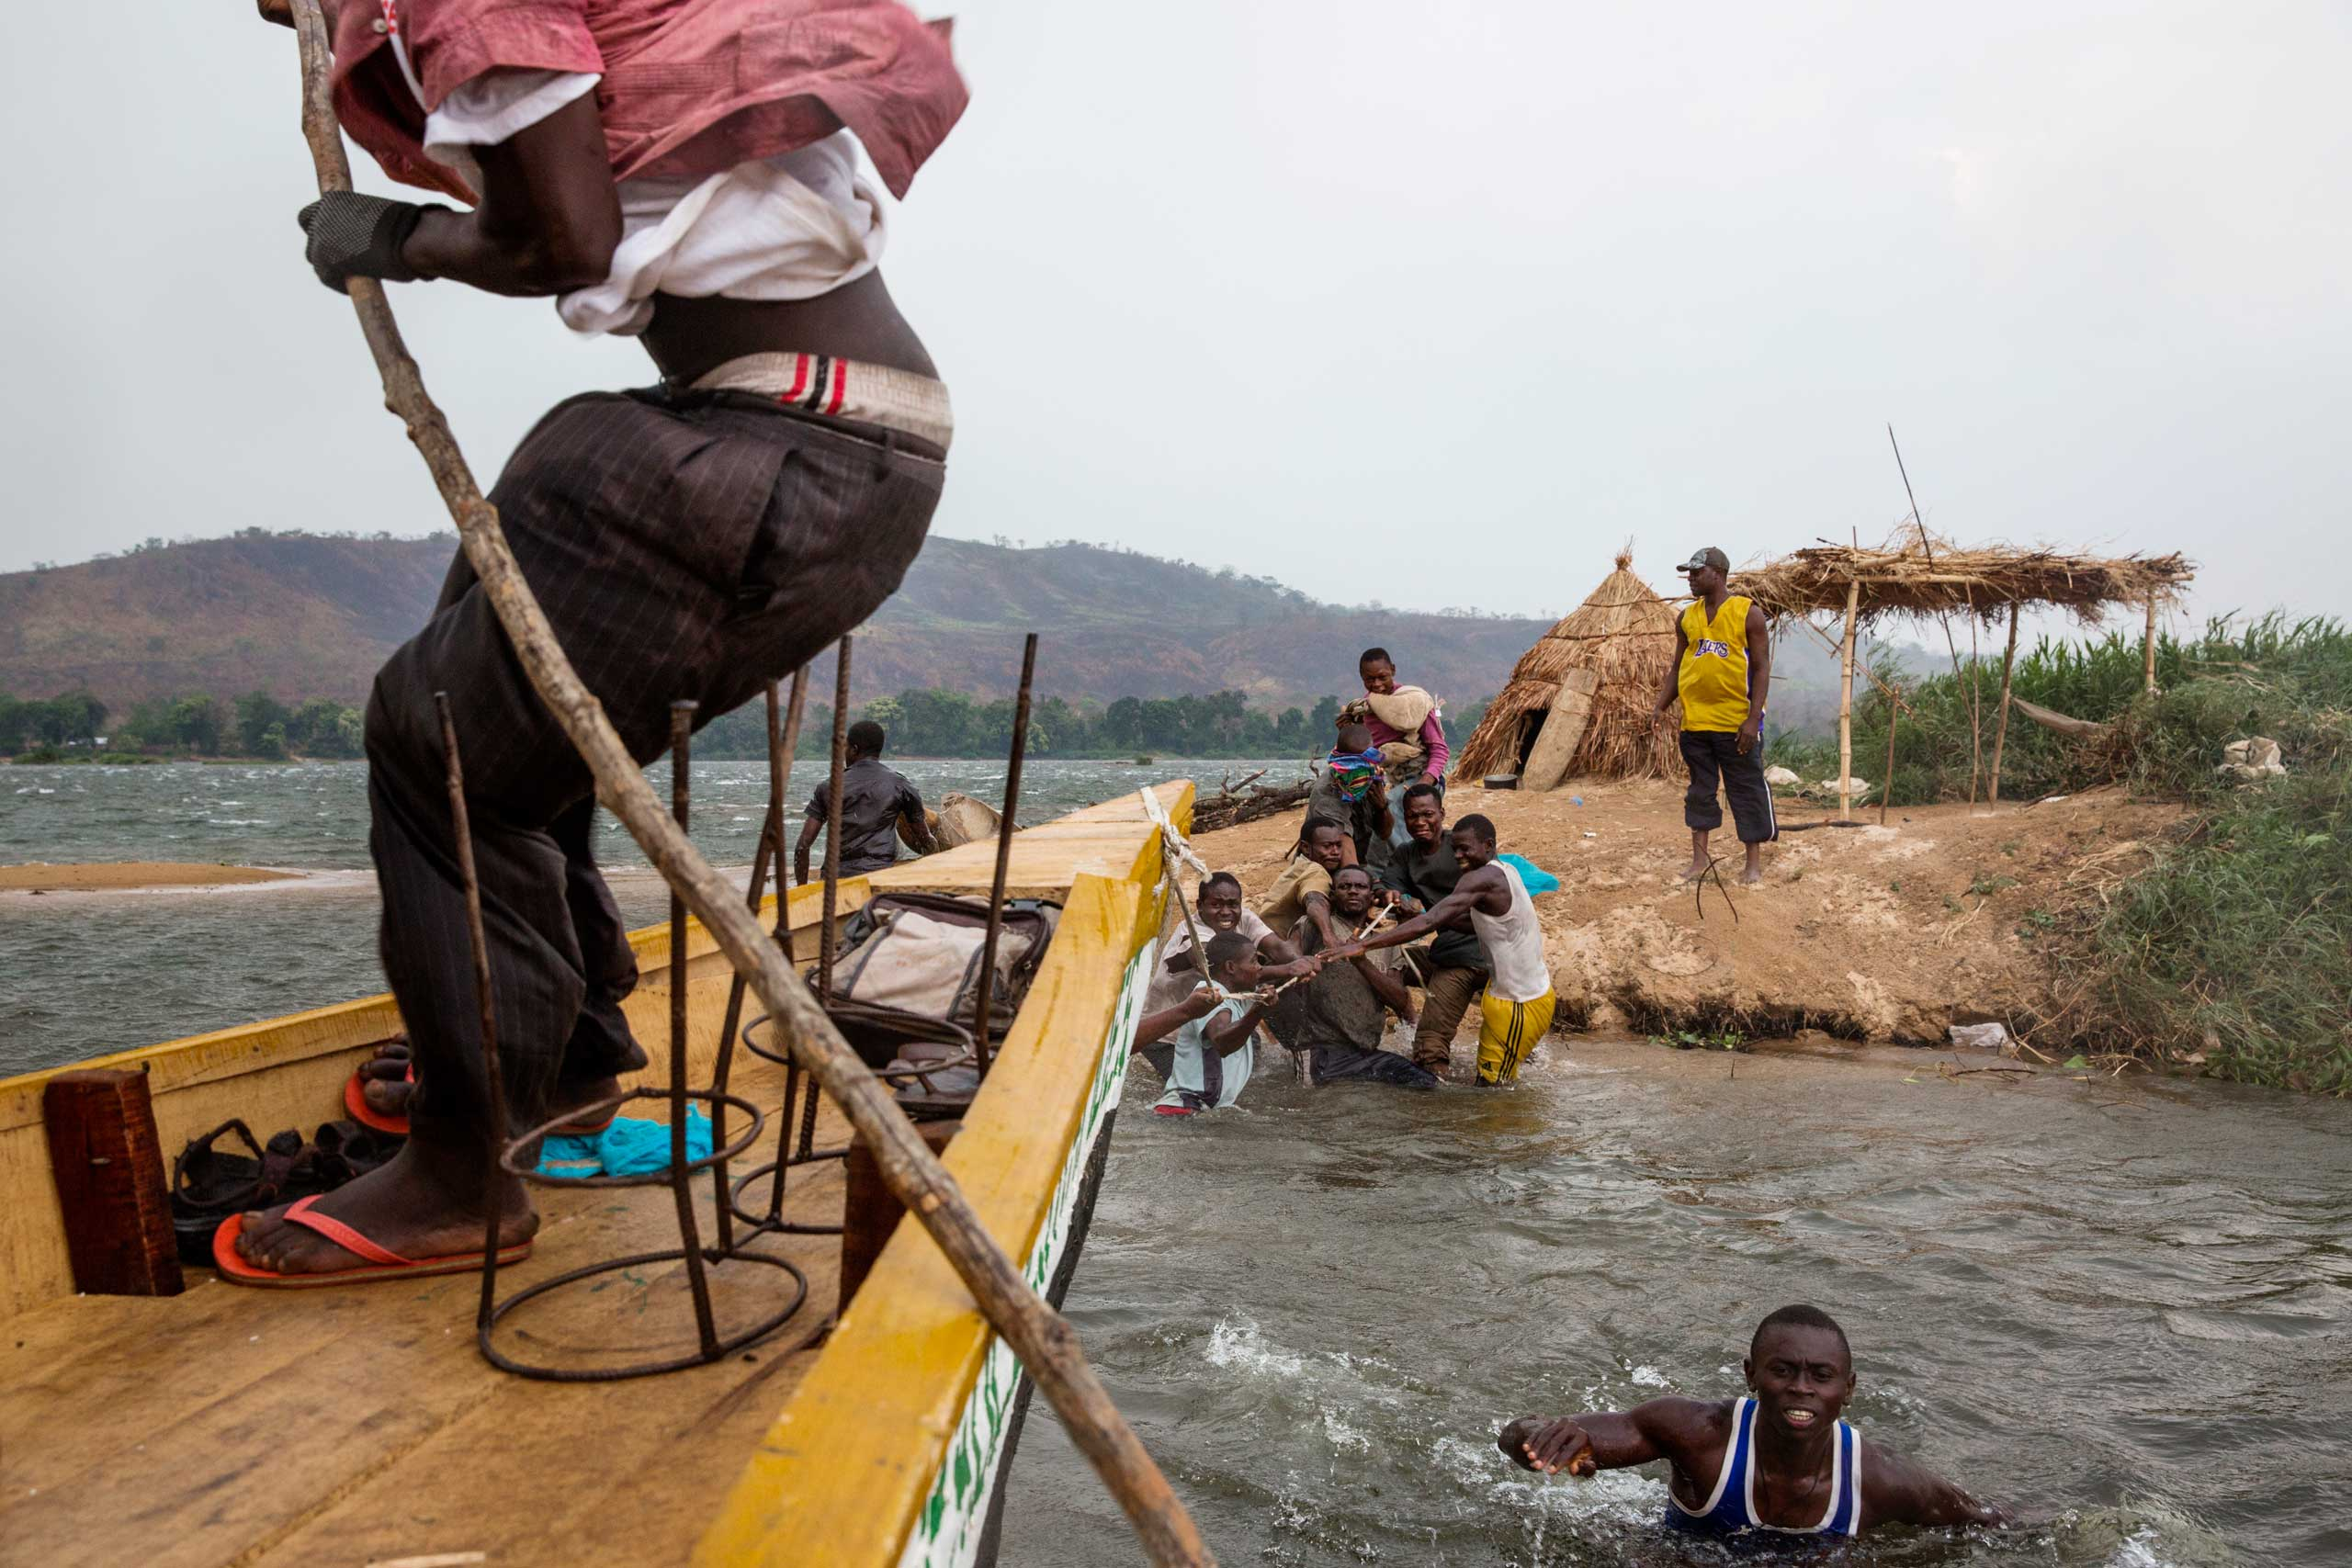 Because of a wind storm on the Oubangui river, a boat carrying goods and cows had to stop.